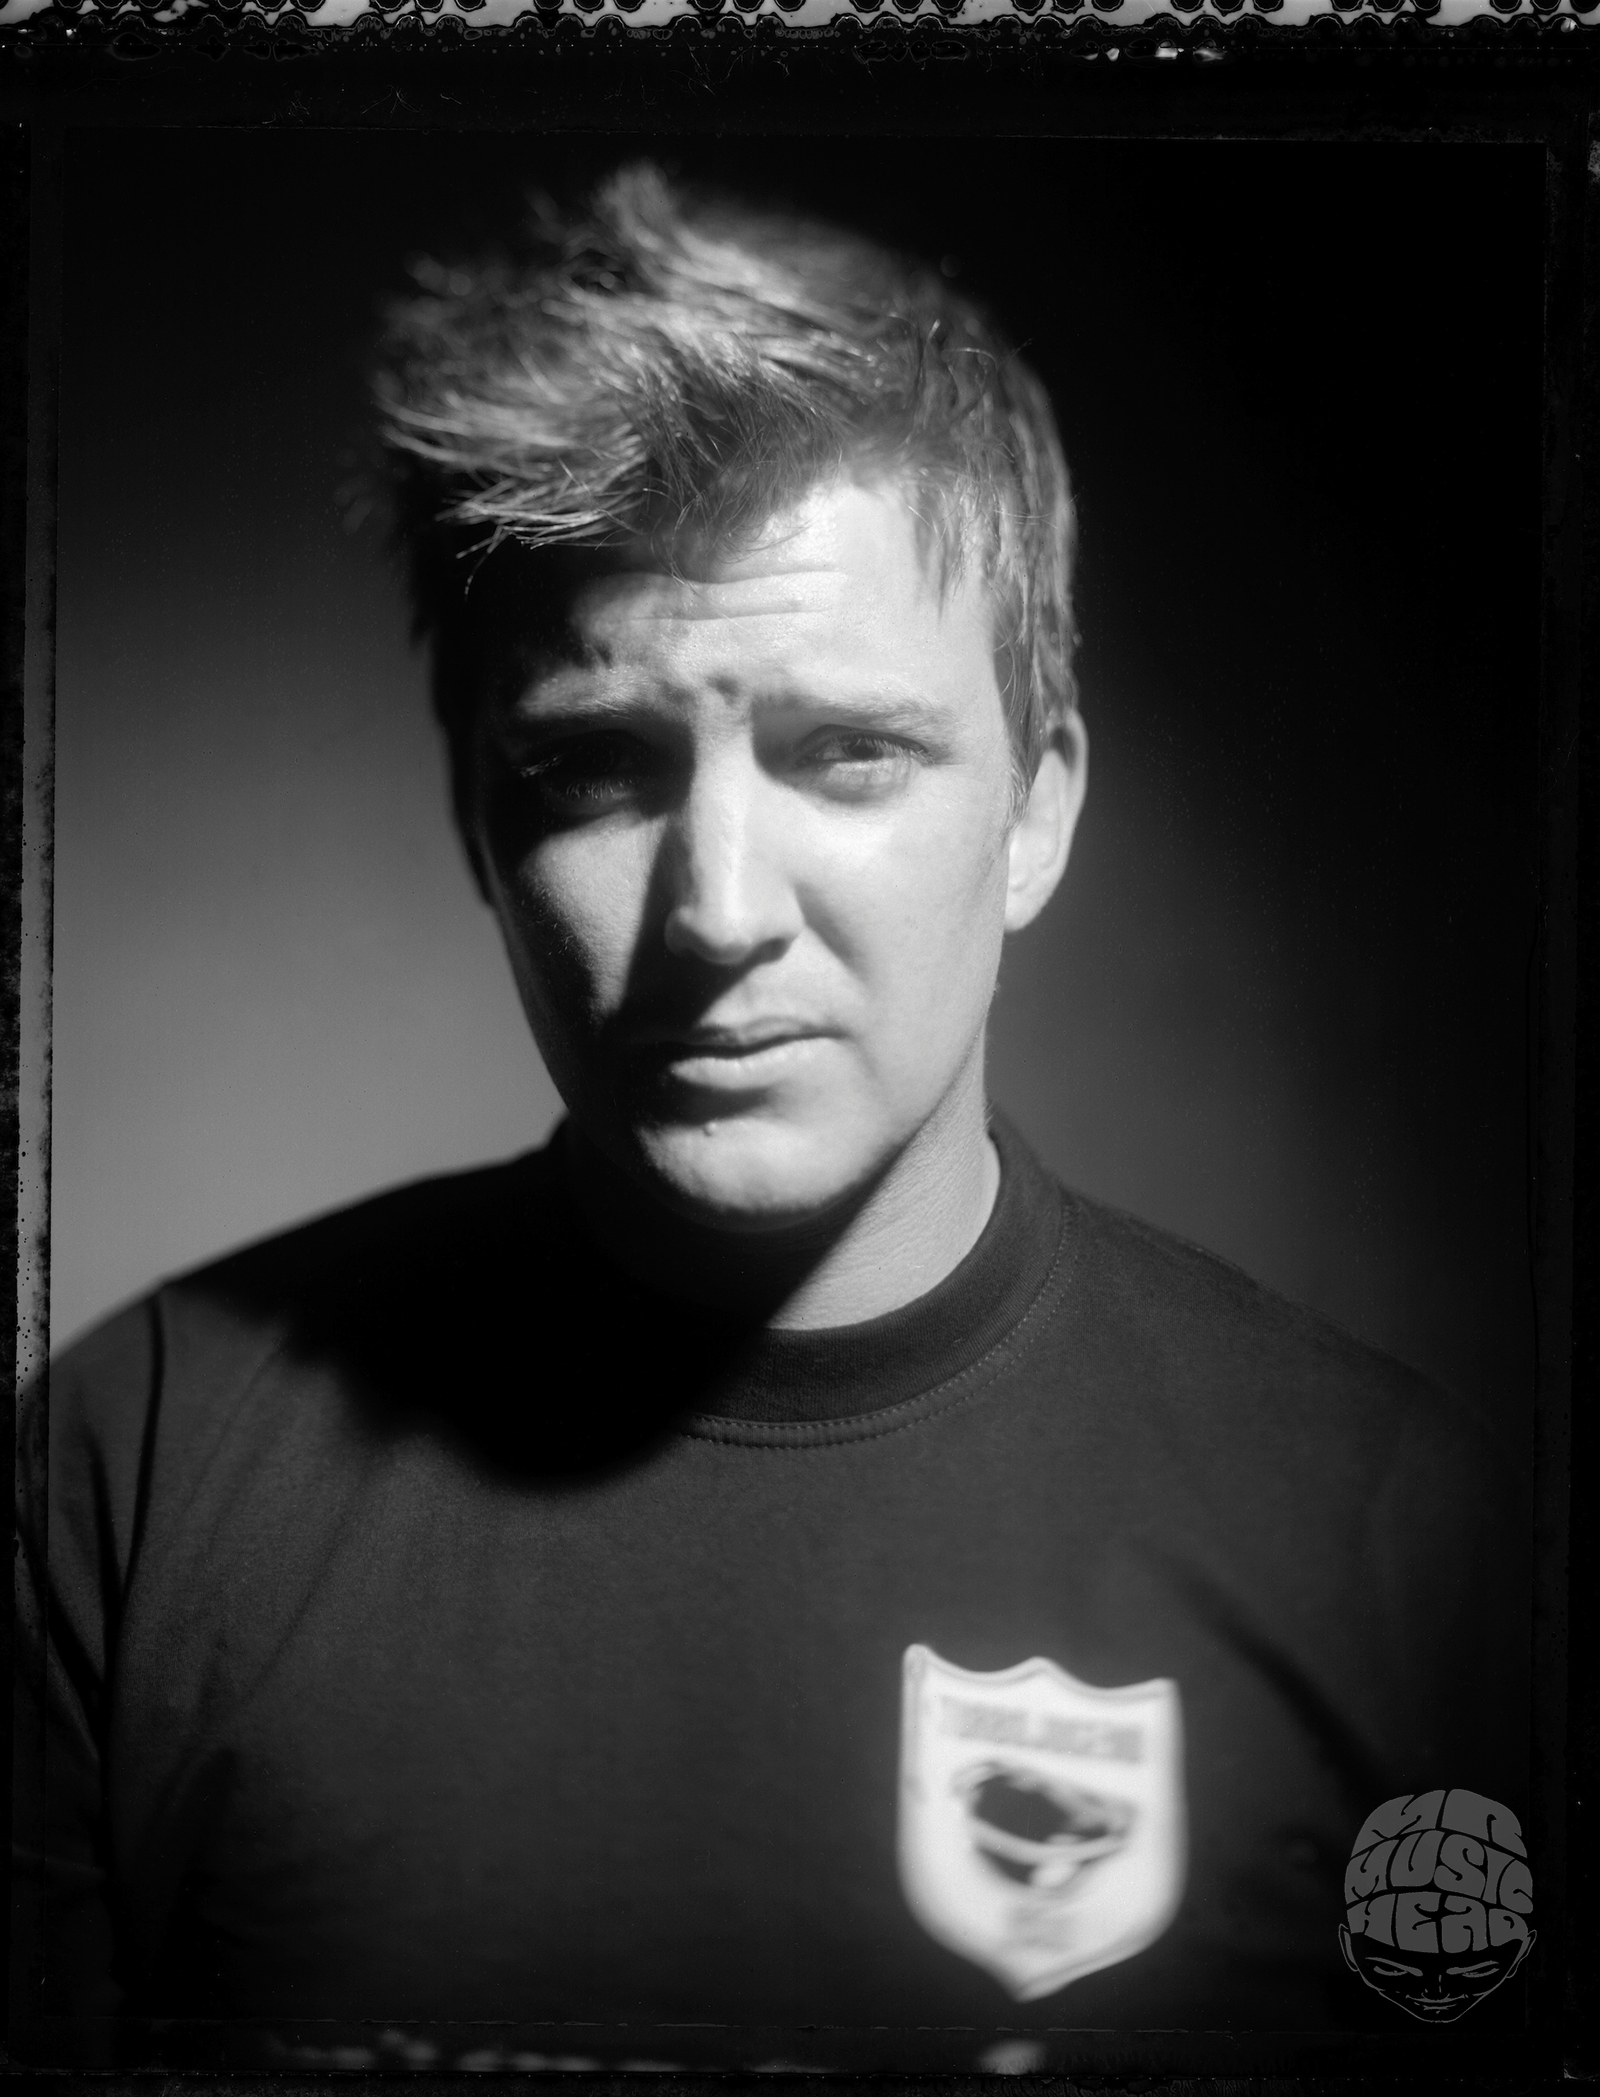 steven dewall_Queens of the stone age_josh homme.jpg